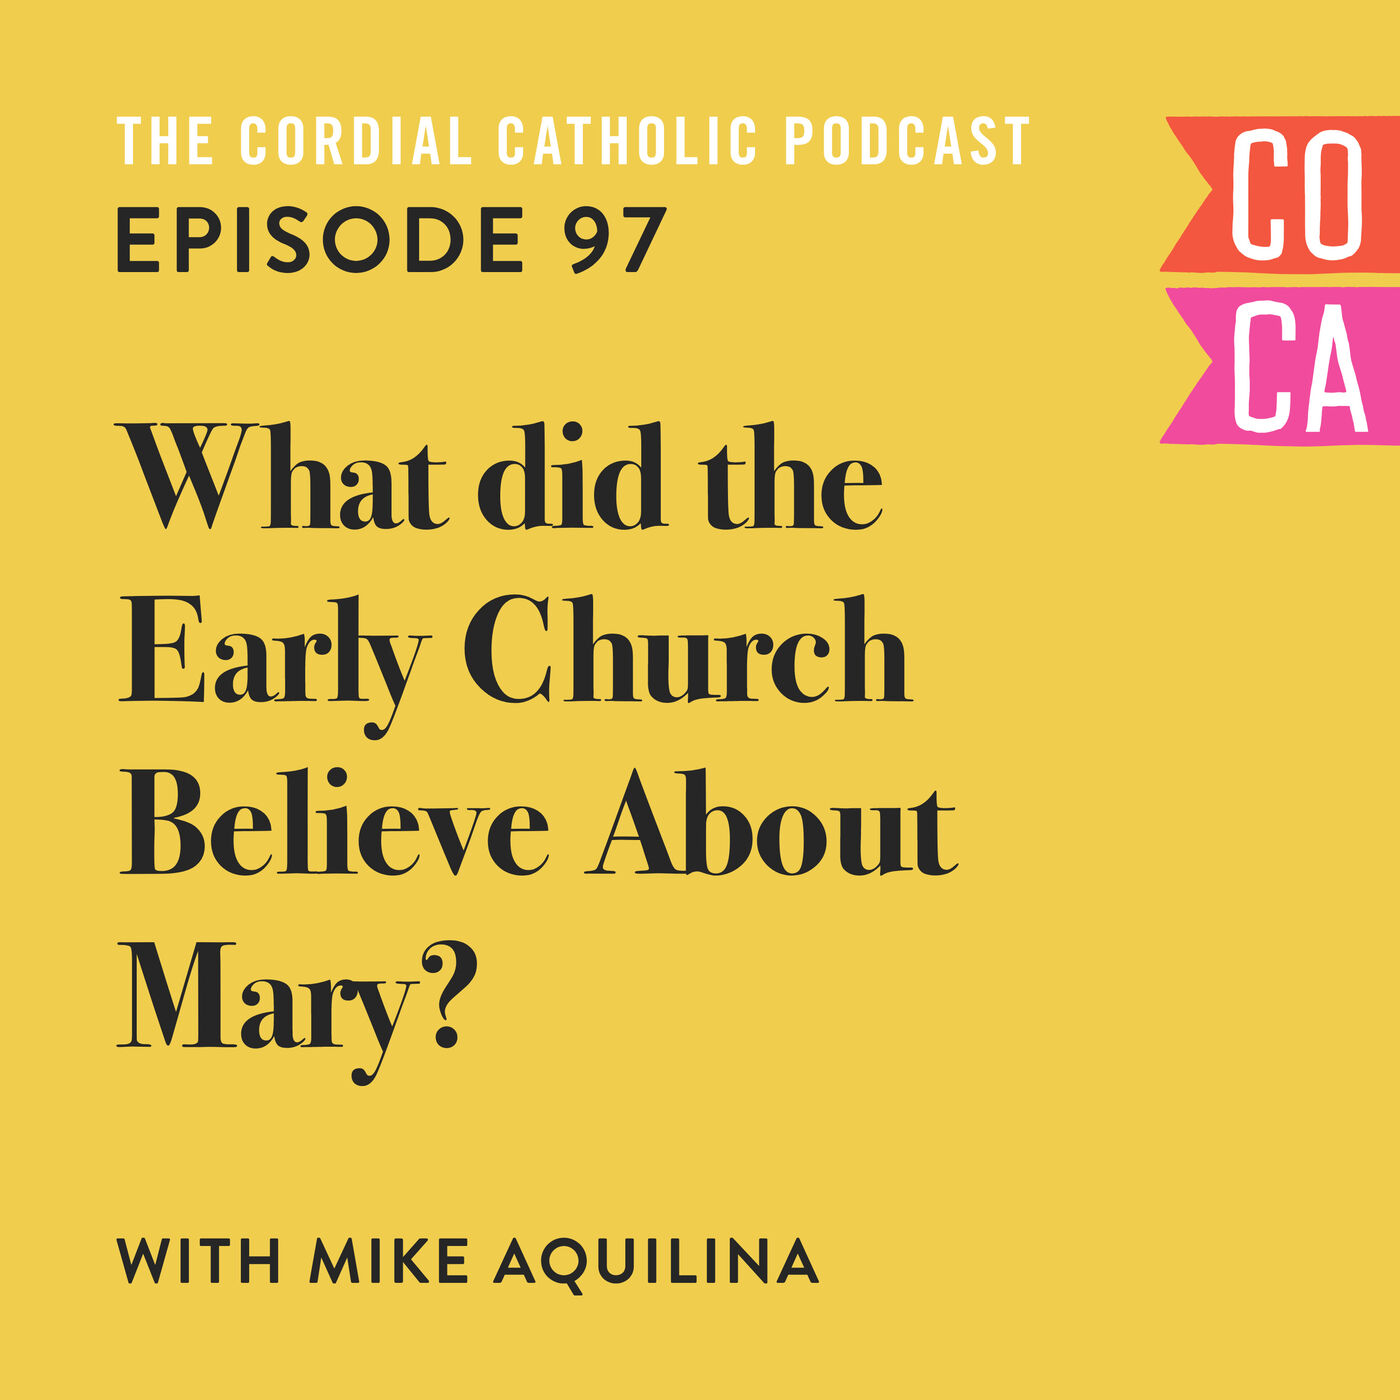 097: What Did the Early Church Believe About Mary? (w/ Mike Aquilina)